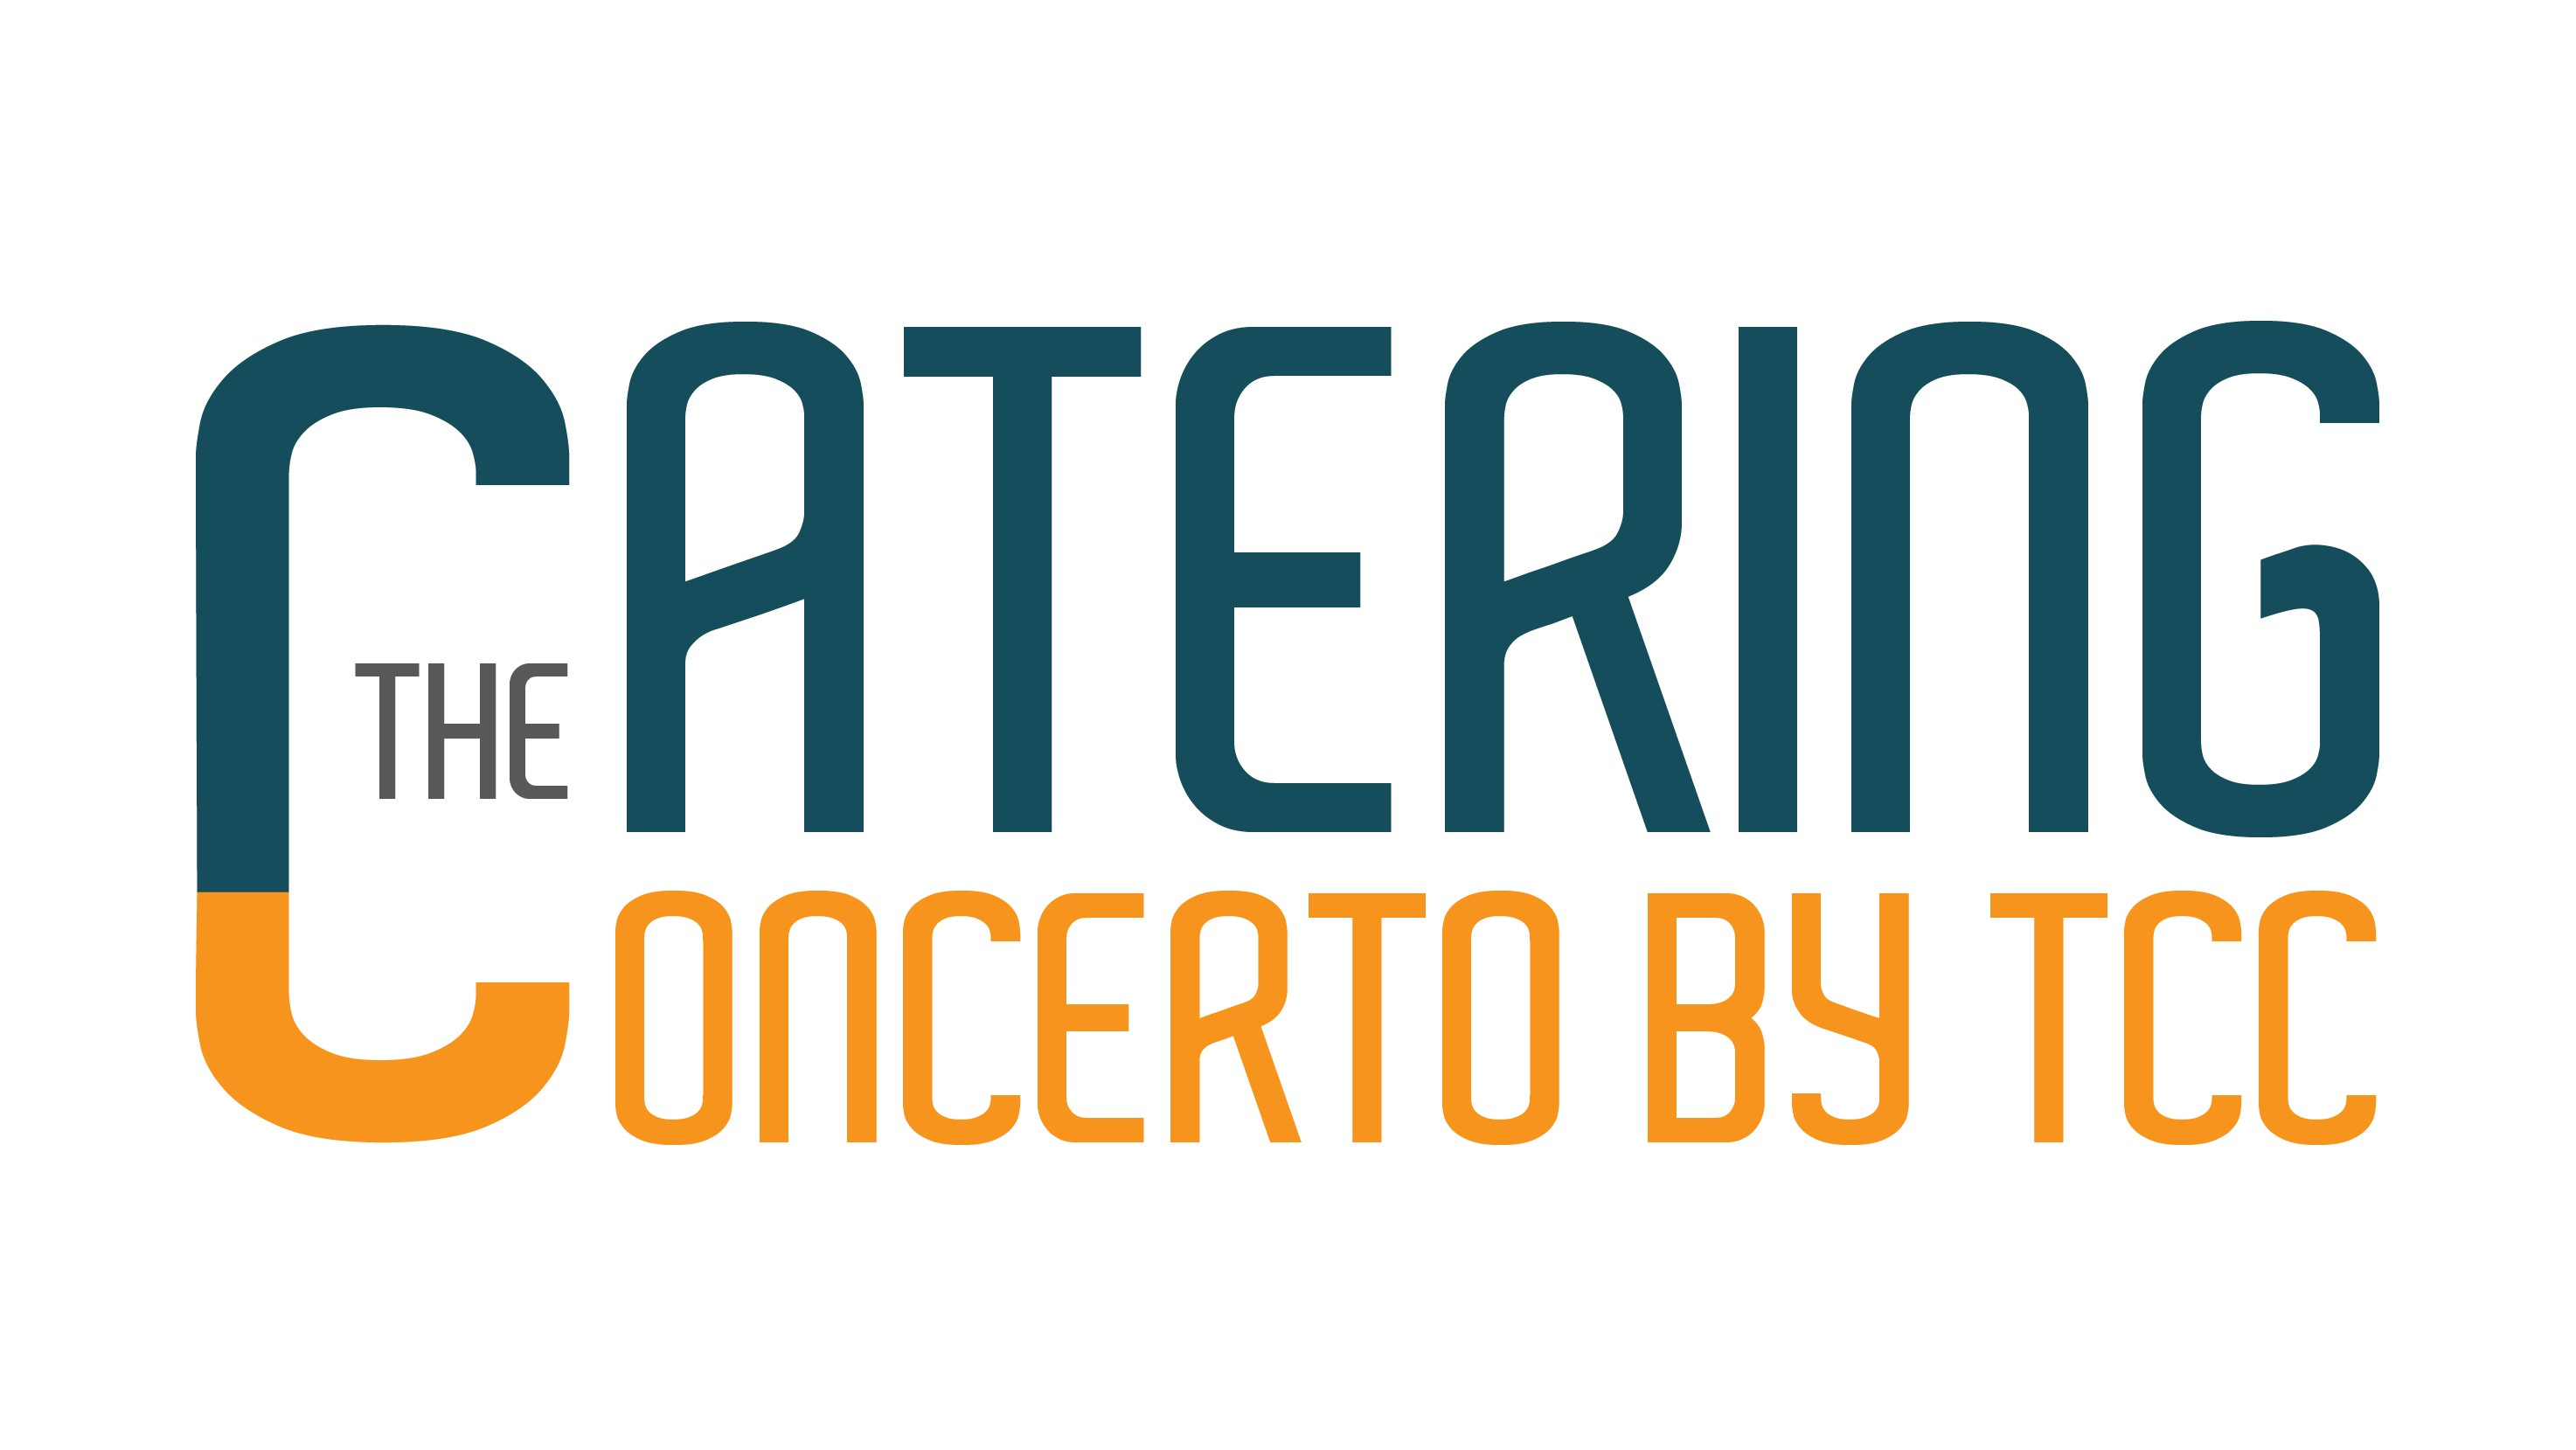 The Catering Concerto